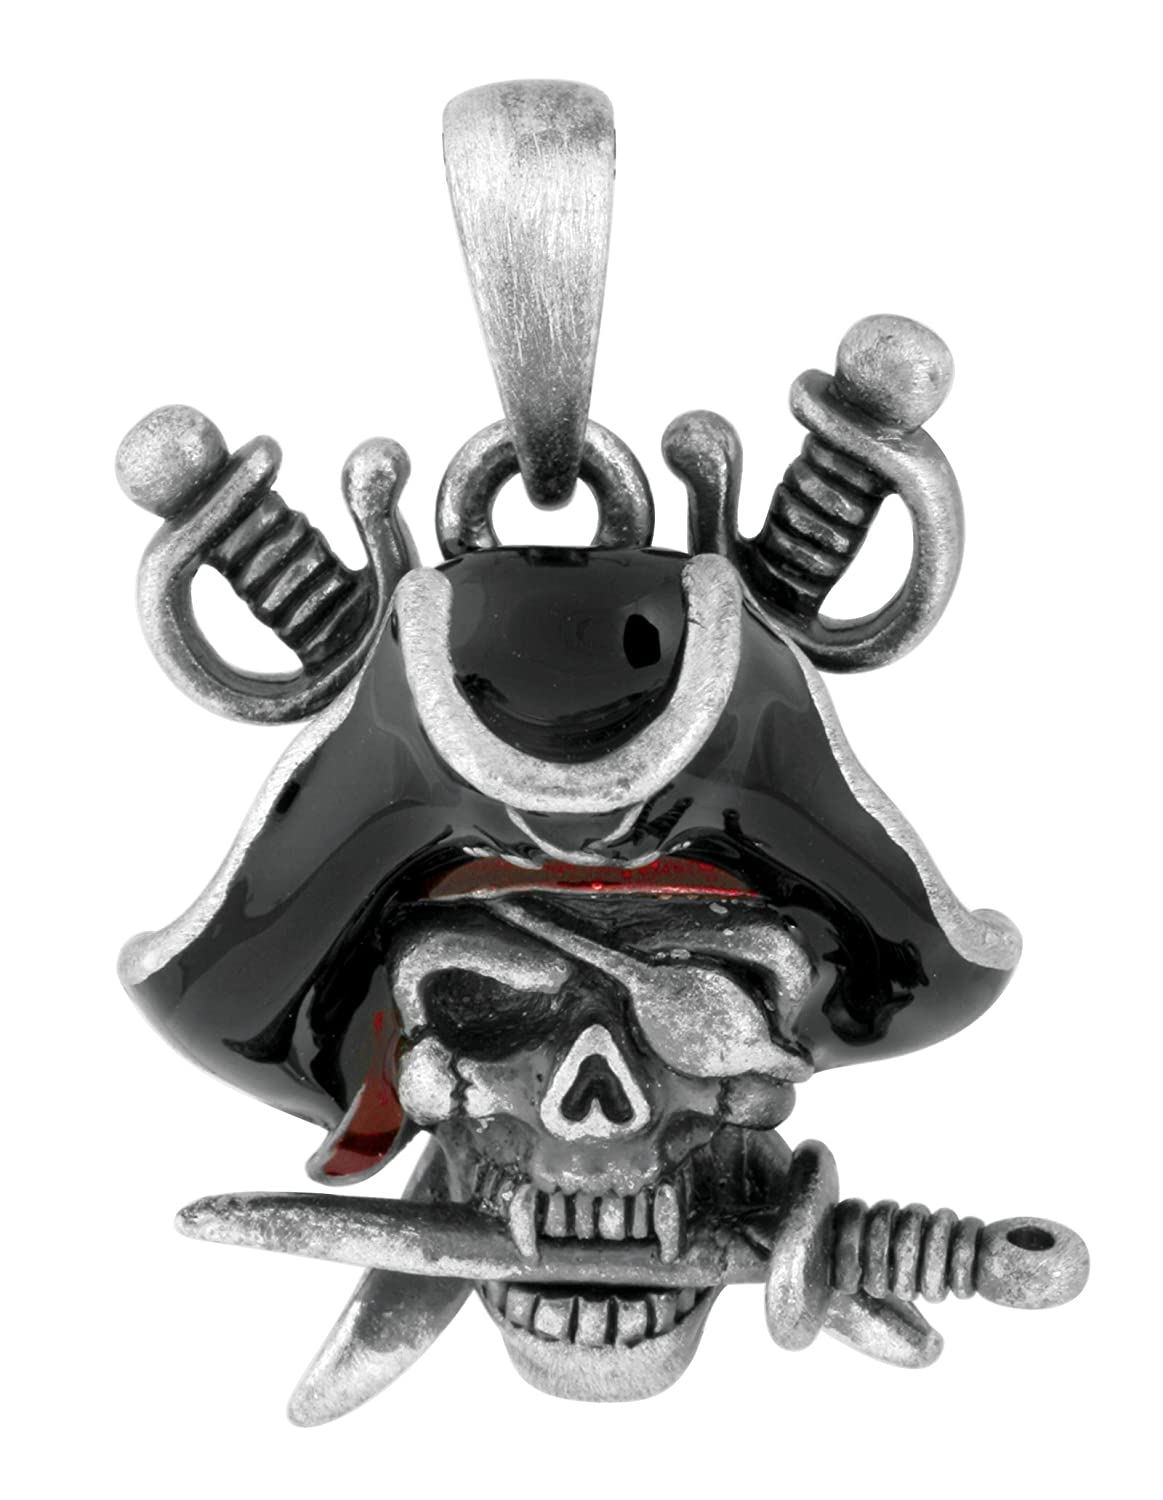 Pewter Davy Jones Pirate Skull Cutlass Pendant